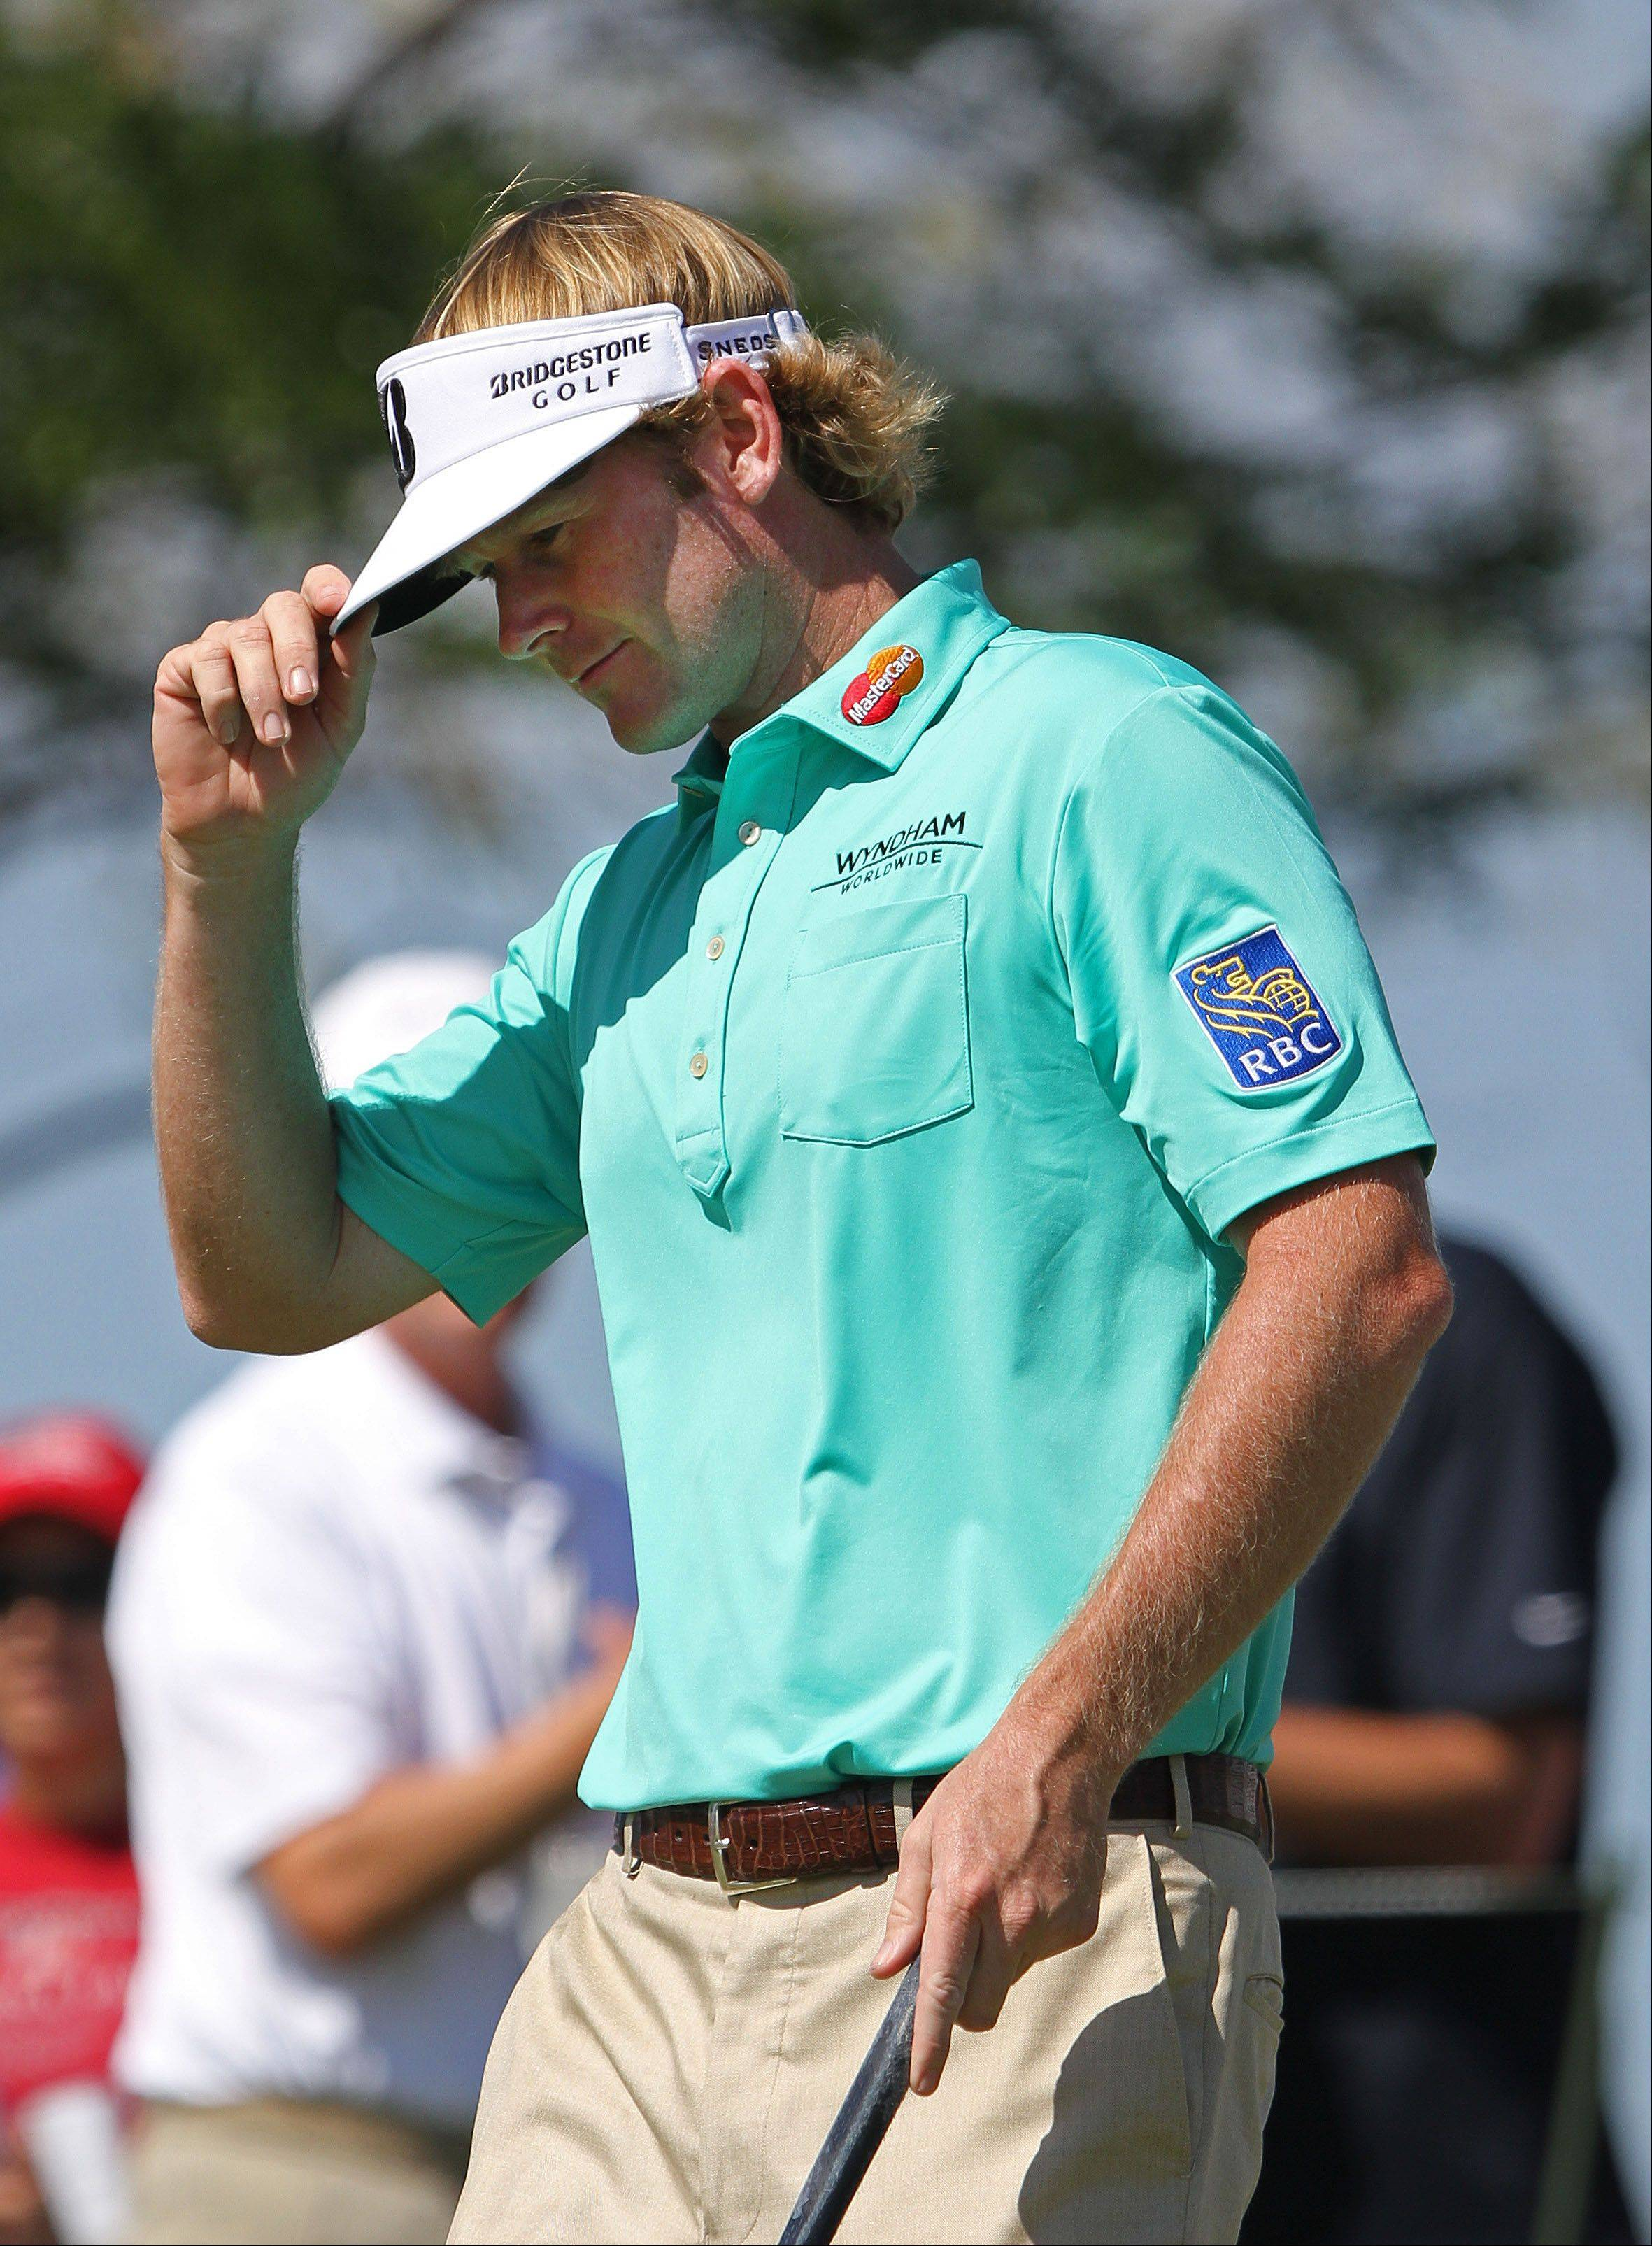 Brandt Snedeker tips his hat after making birdie on the 13th hole.